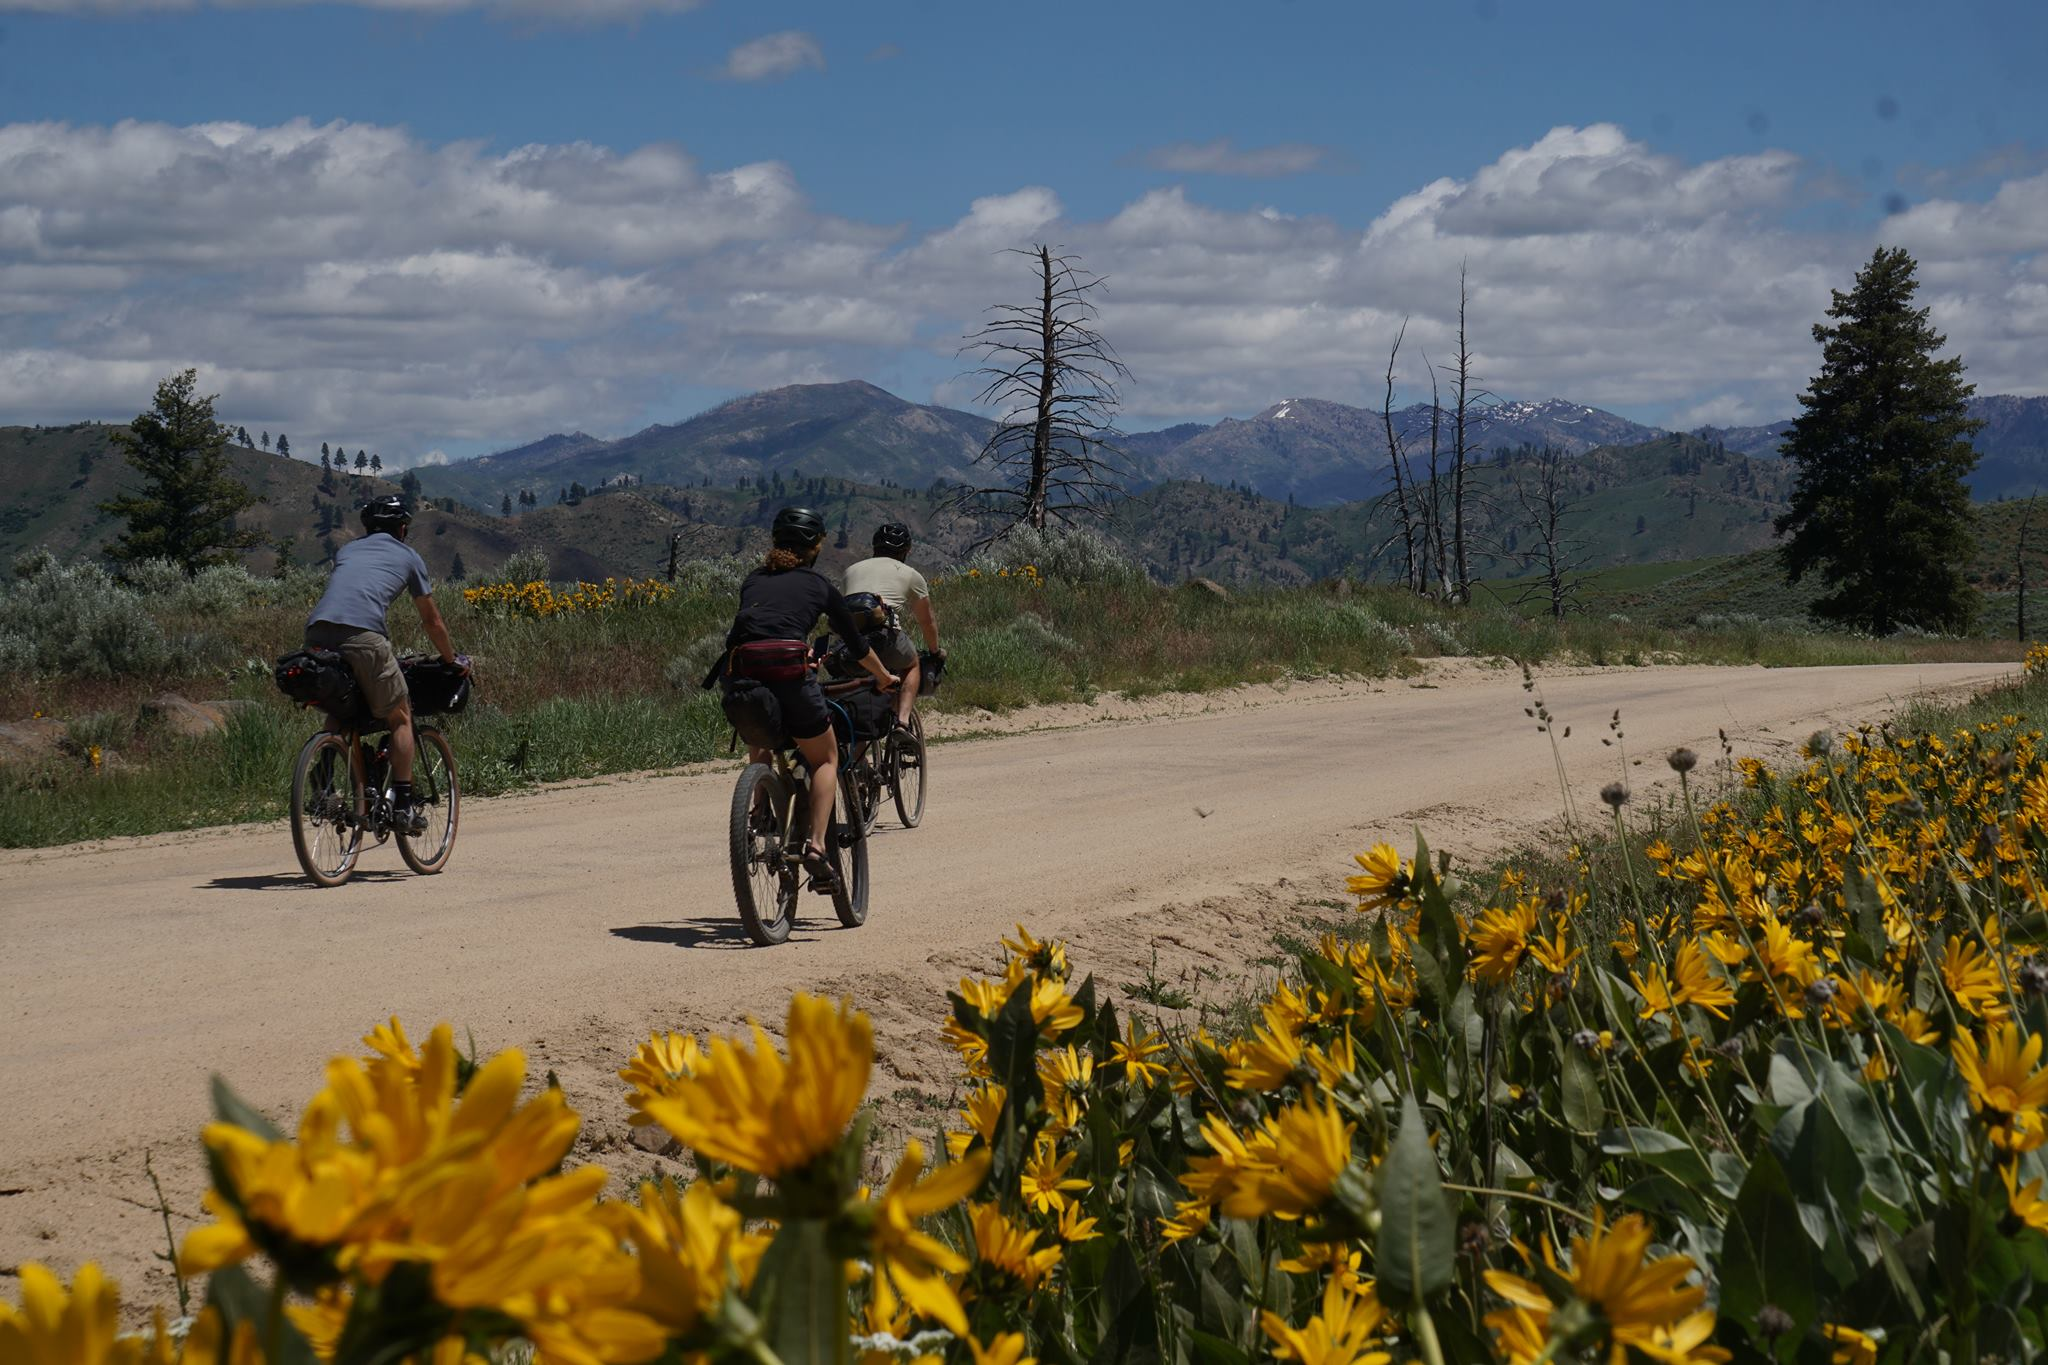 Bike Traveler's Bazaar - Tuesday, May 14 from 6:30-8:30 PM at Sunset Park. Looking to get started touring or bike-packing? Here's an opportunity to pick up a bike, parts, or gear to help you get out there! Maybe you're a seasoned rider with some unused equipment collecting dust. Bring your gear down to Sunset Park to buy/sell/trade. Follow the Facebook event for more information.